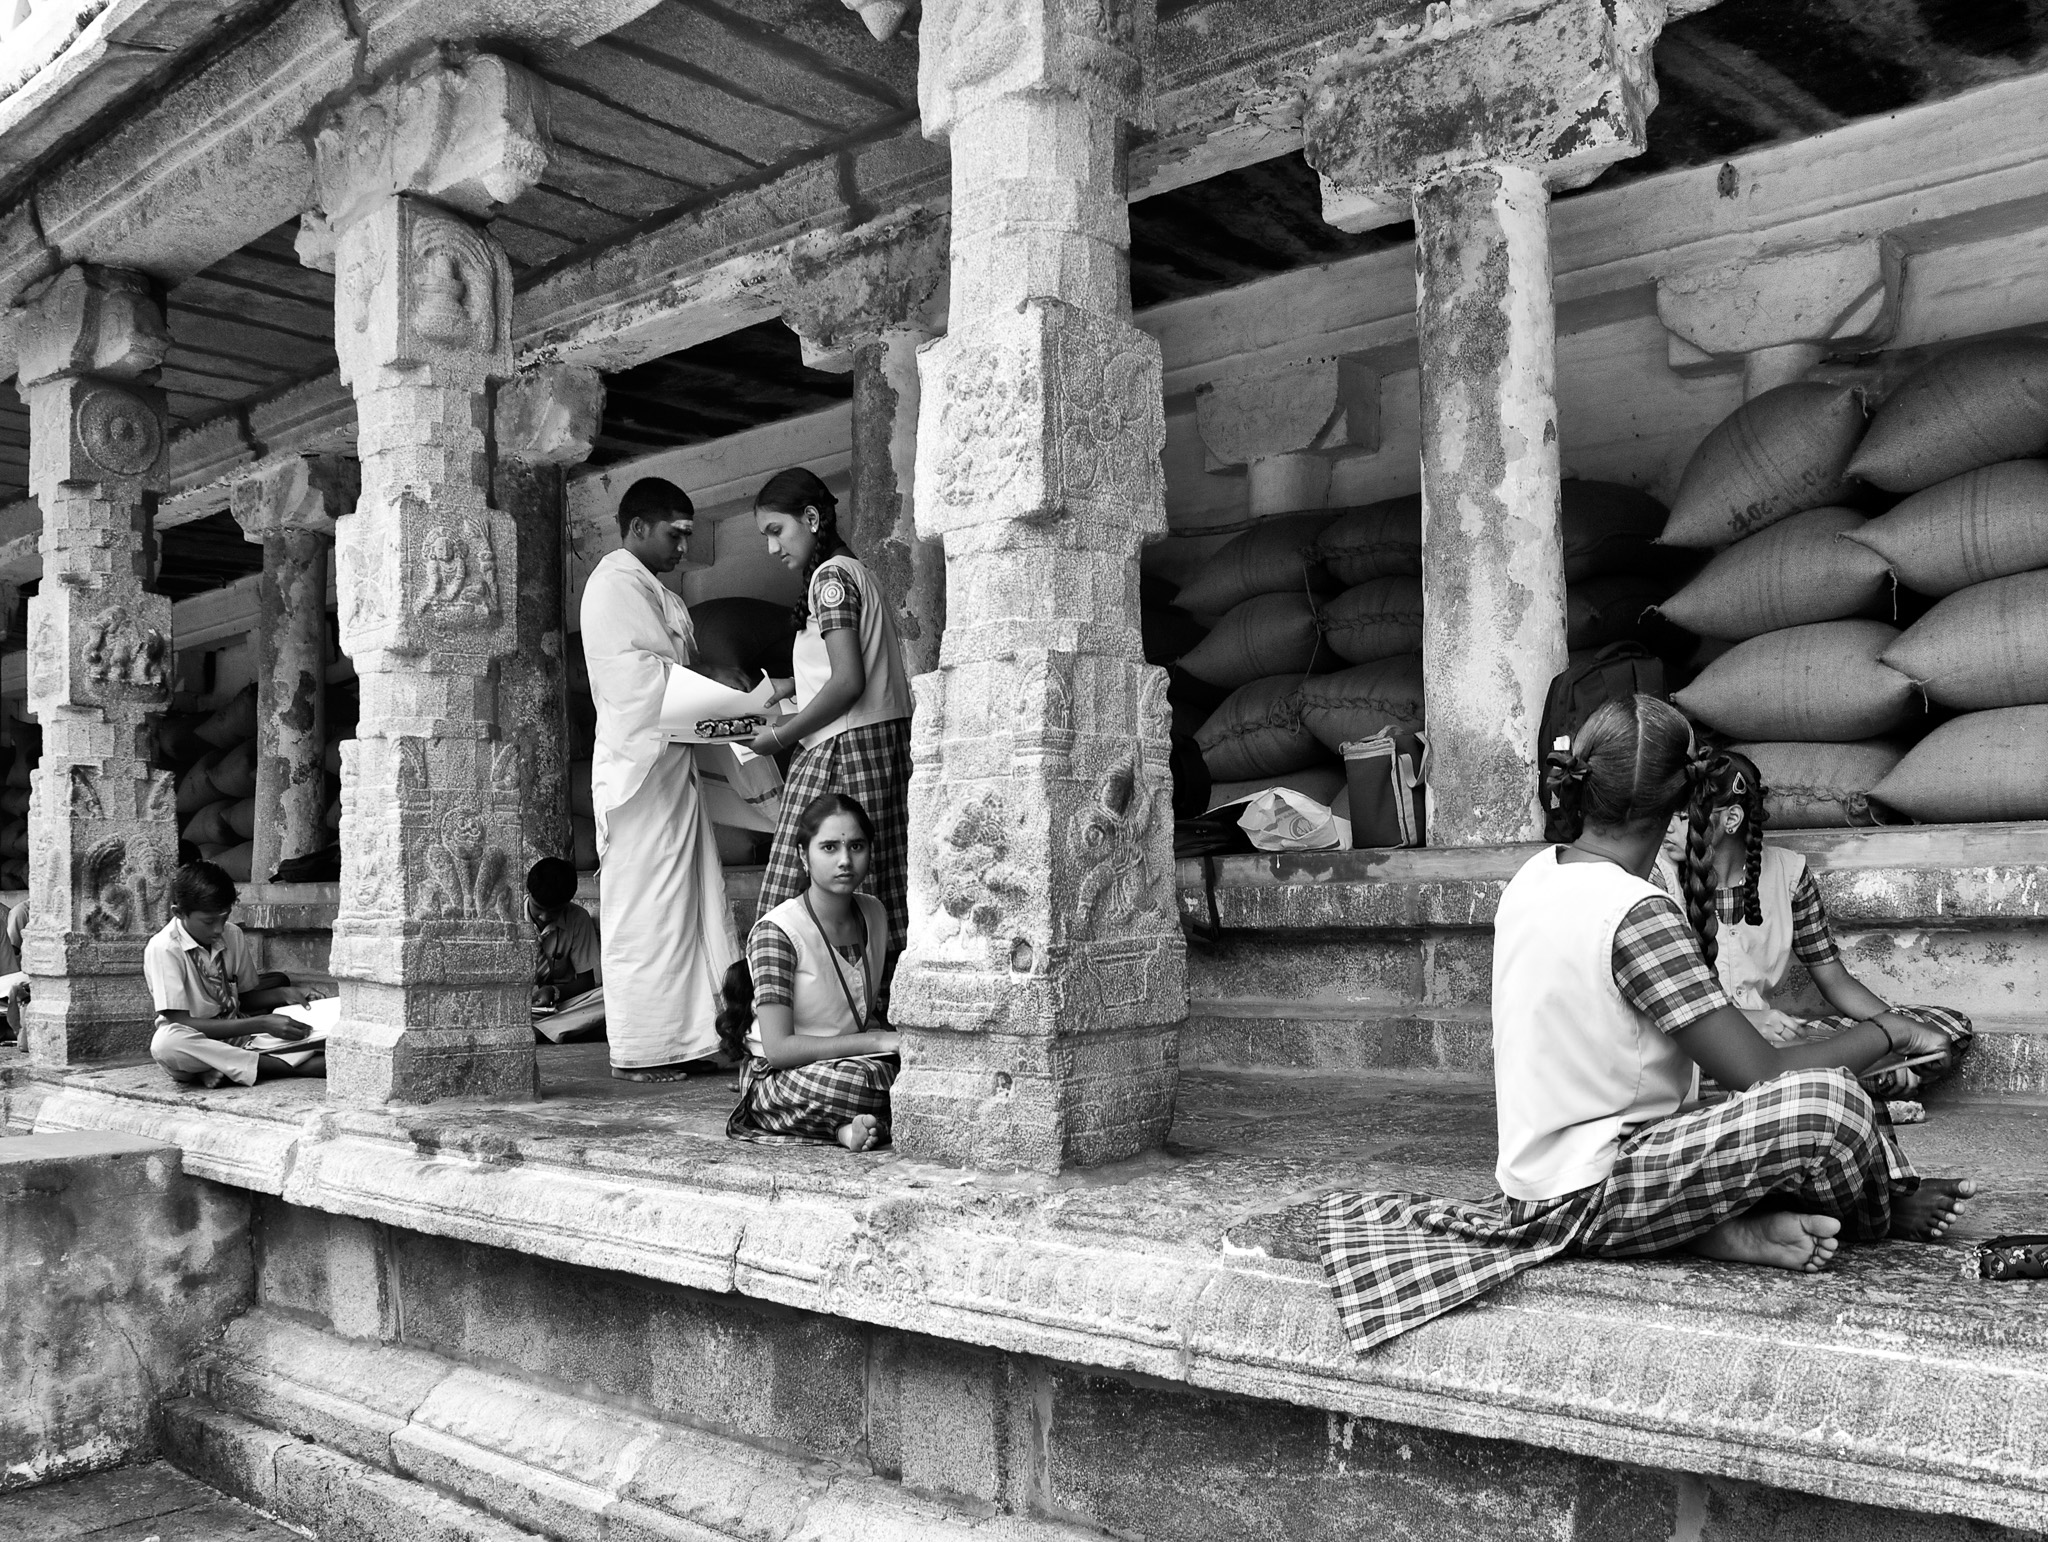 Students seated behind pillars of the Arunachalesvara Temple  for an essay competition, Tiruvannamalai, Tamil Nadu, India